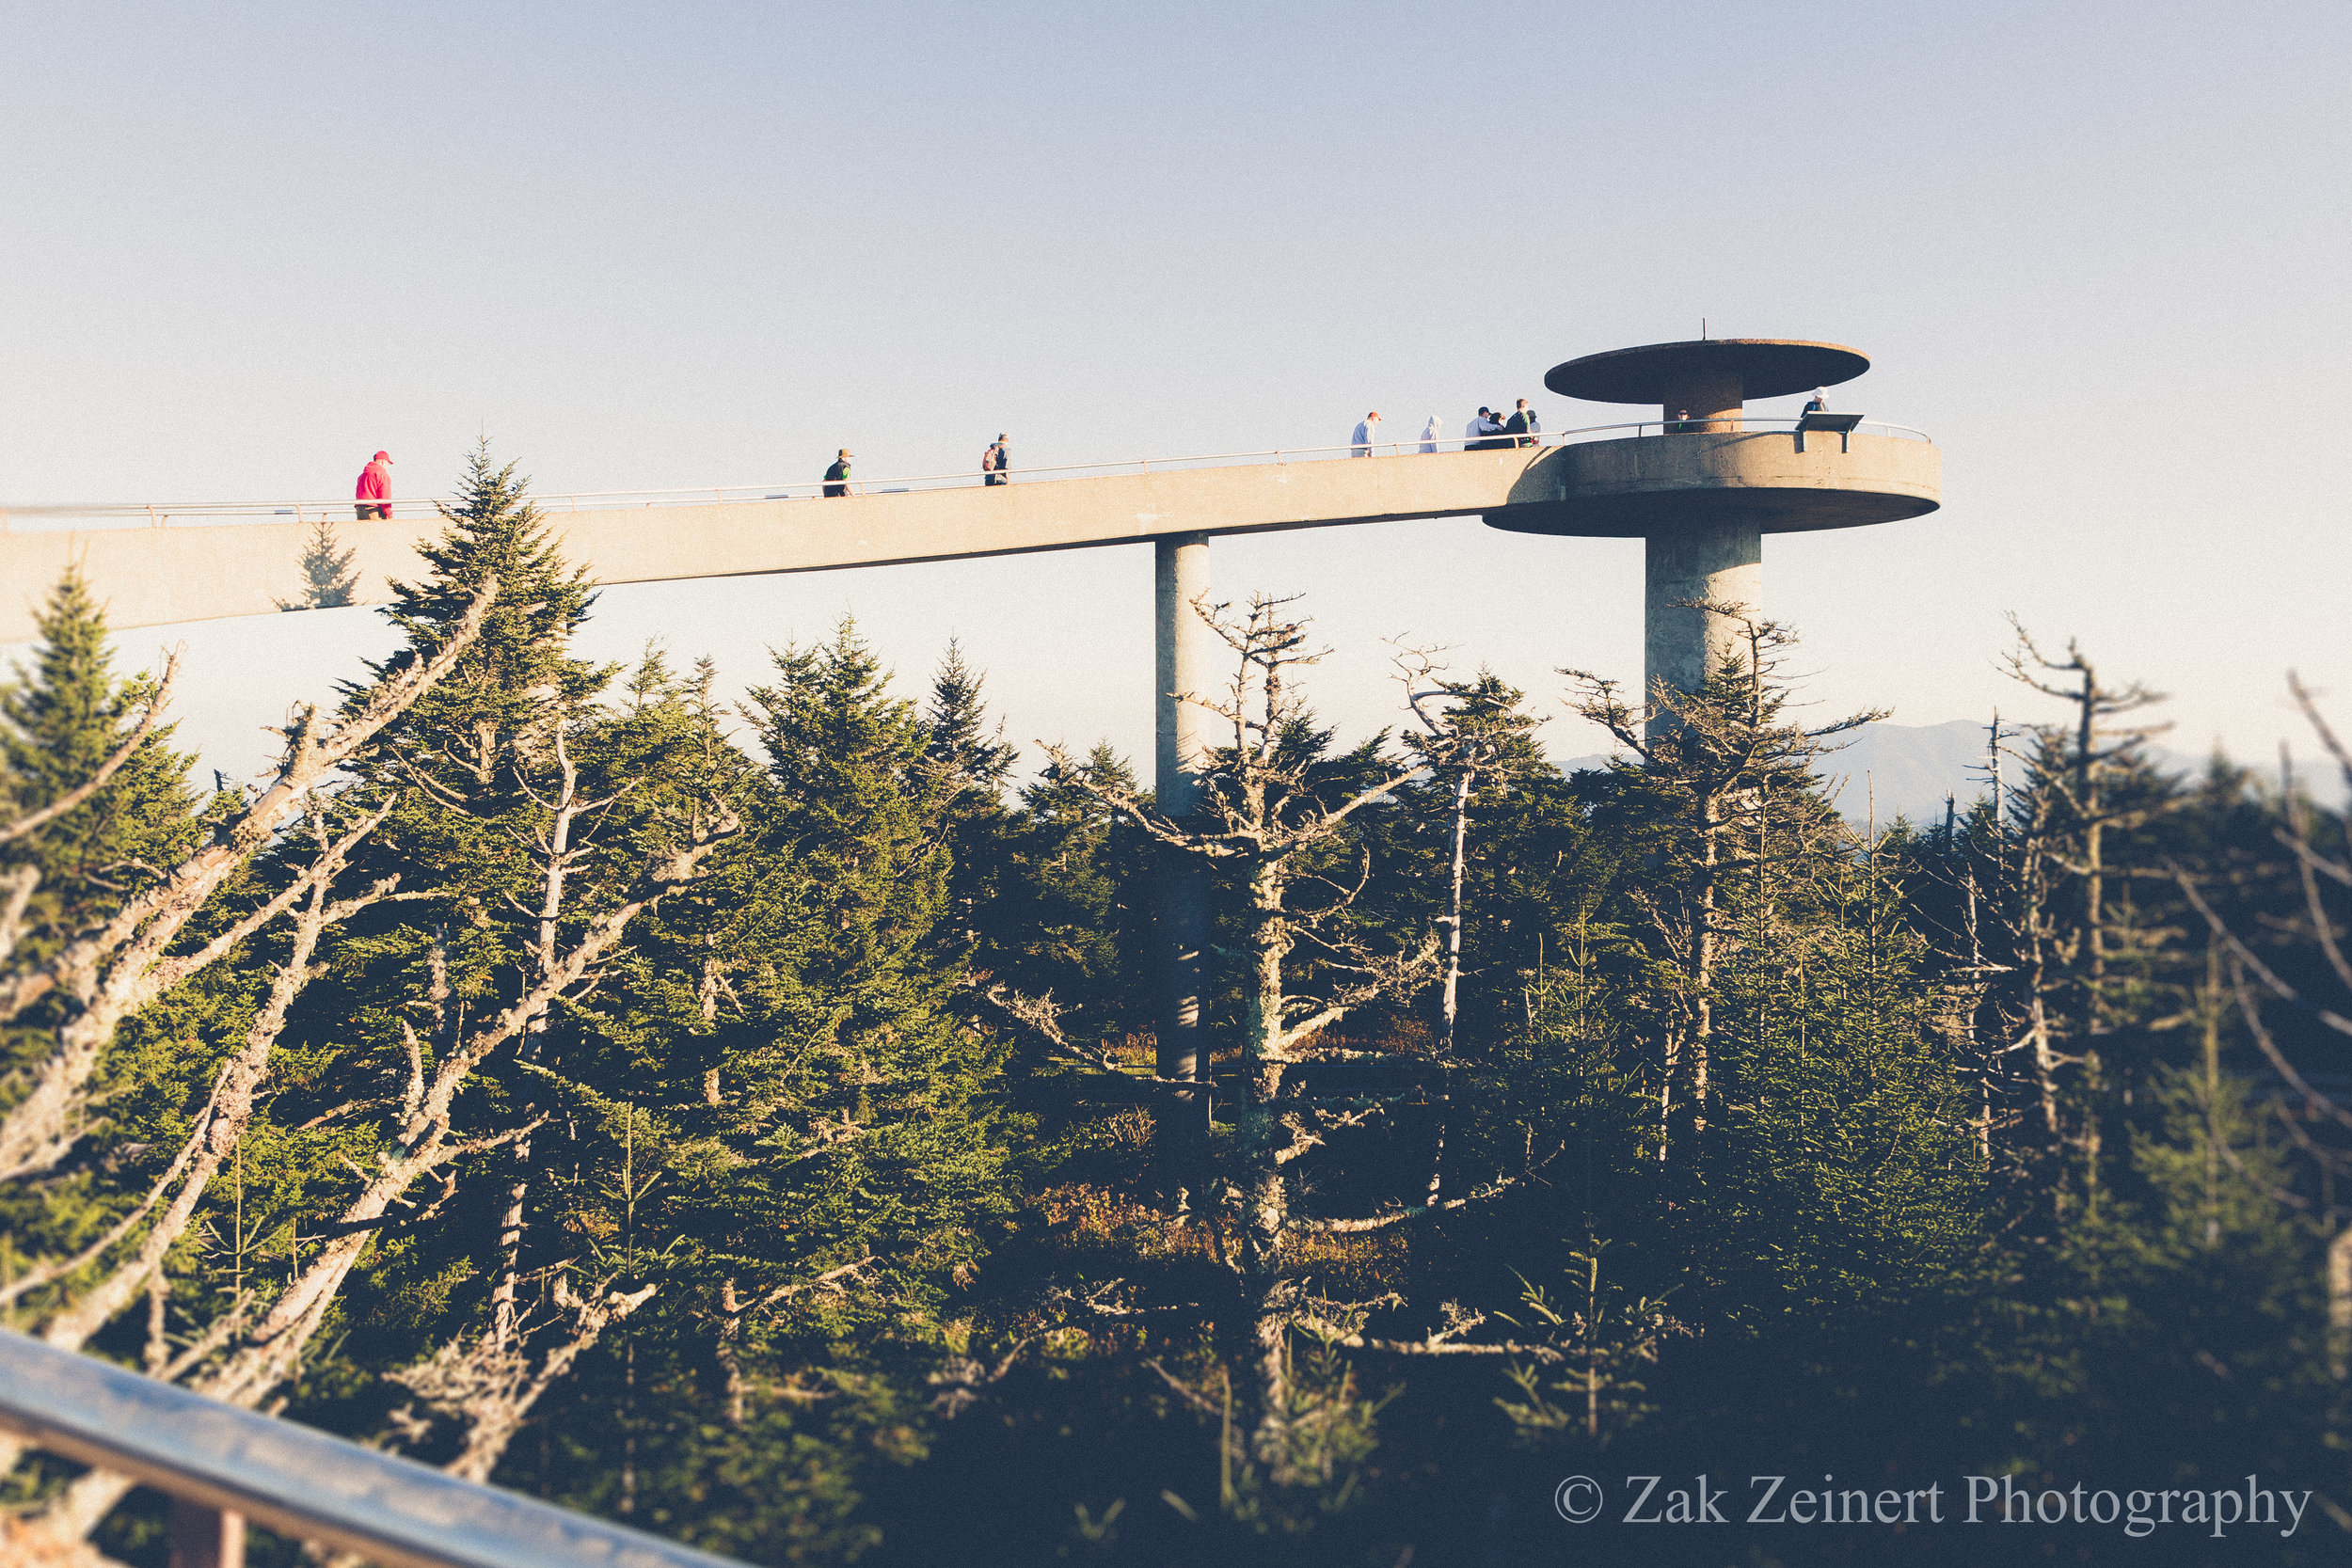 Clingman's Dome - at 6,643 feet in elevation, it is the highest point in the park. This shot was taken on a clear day